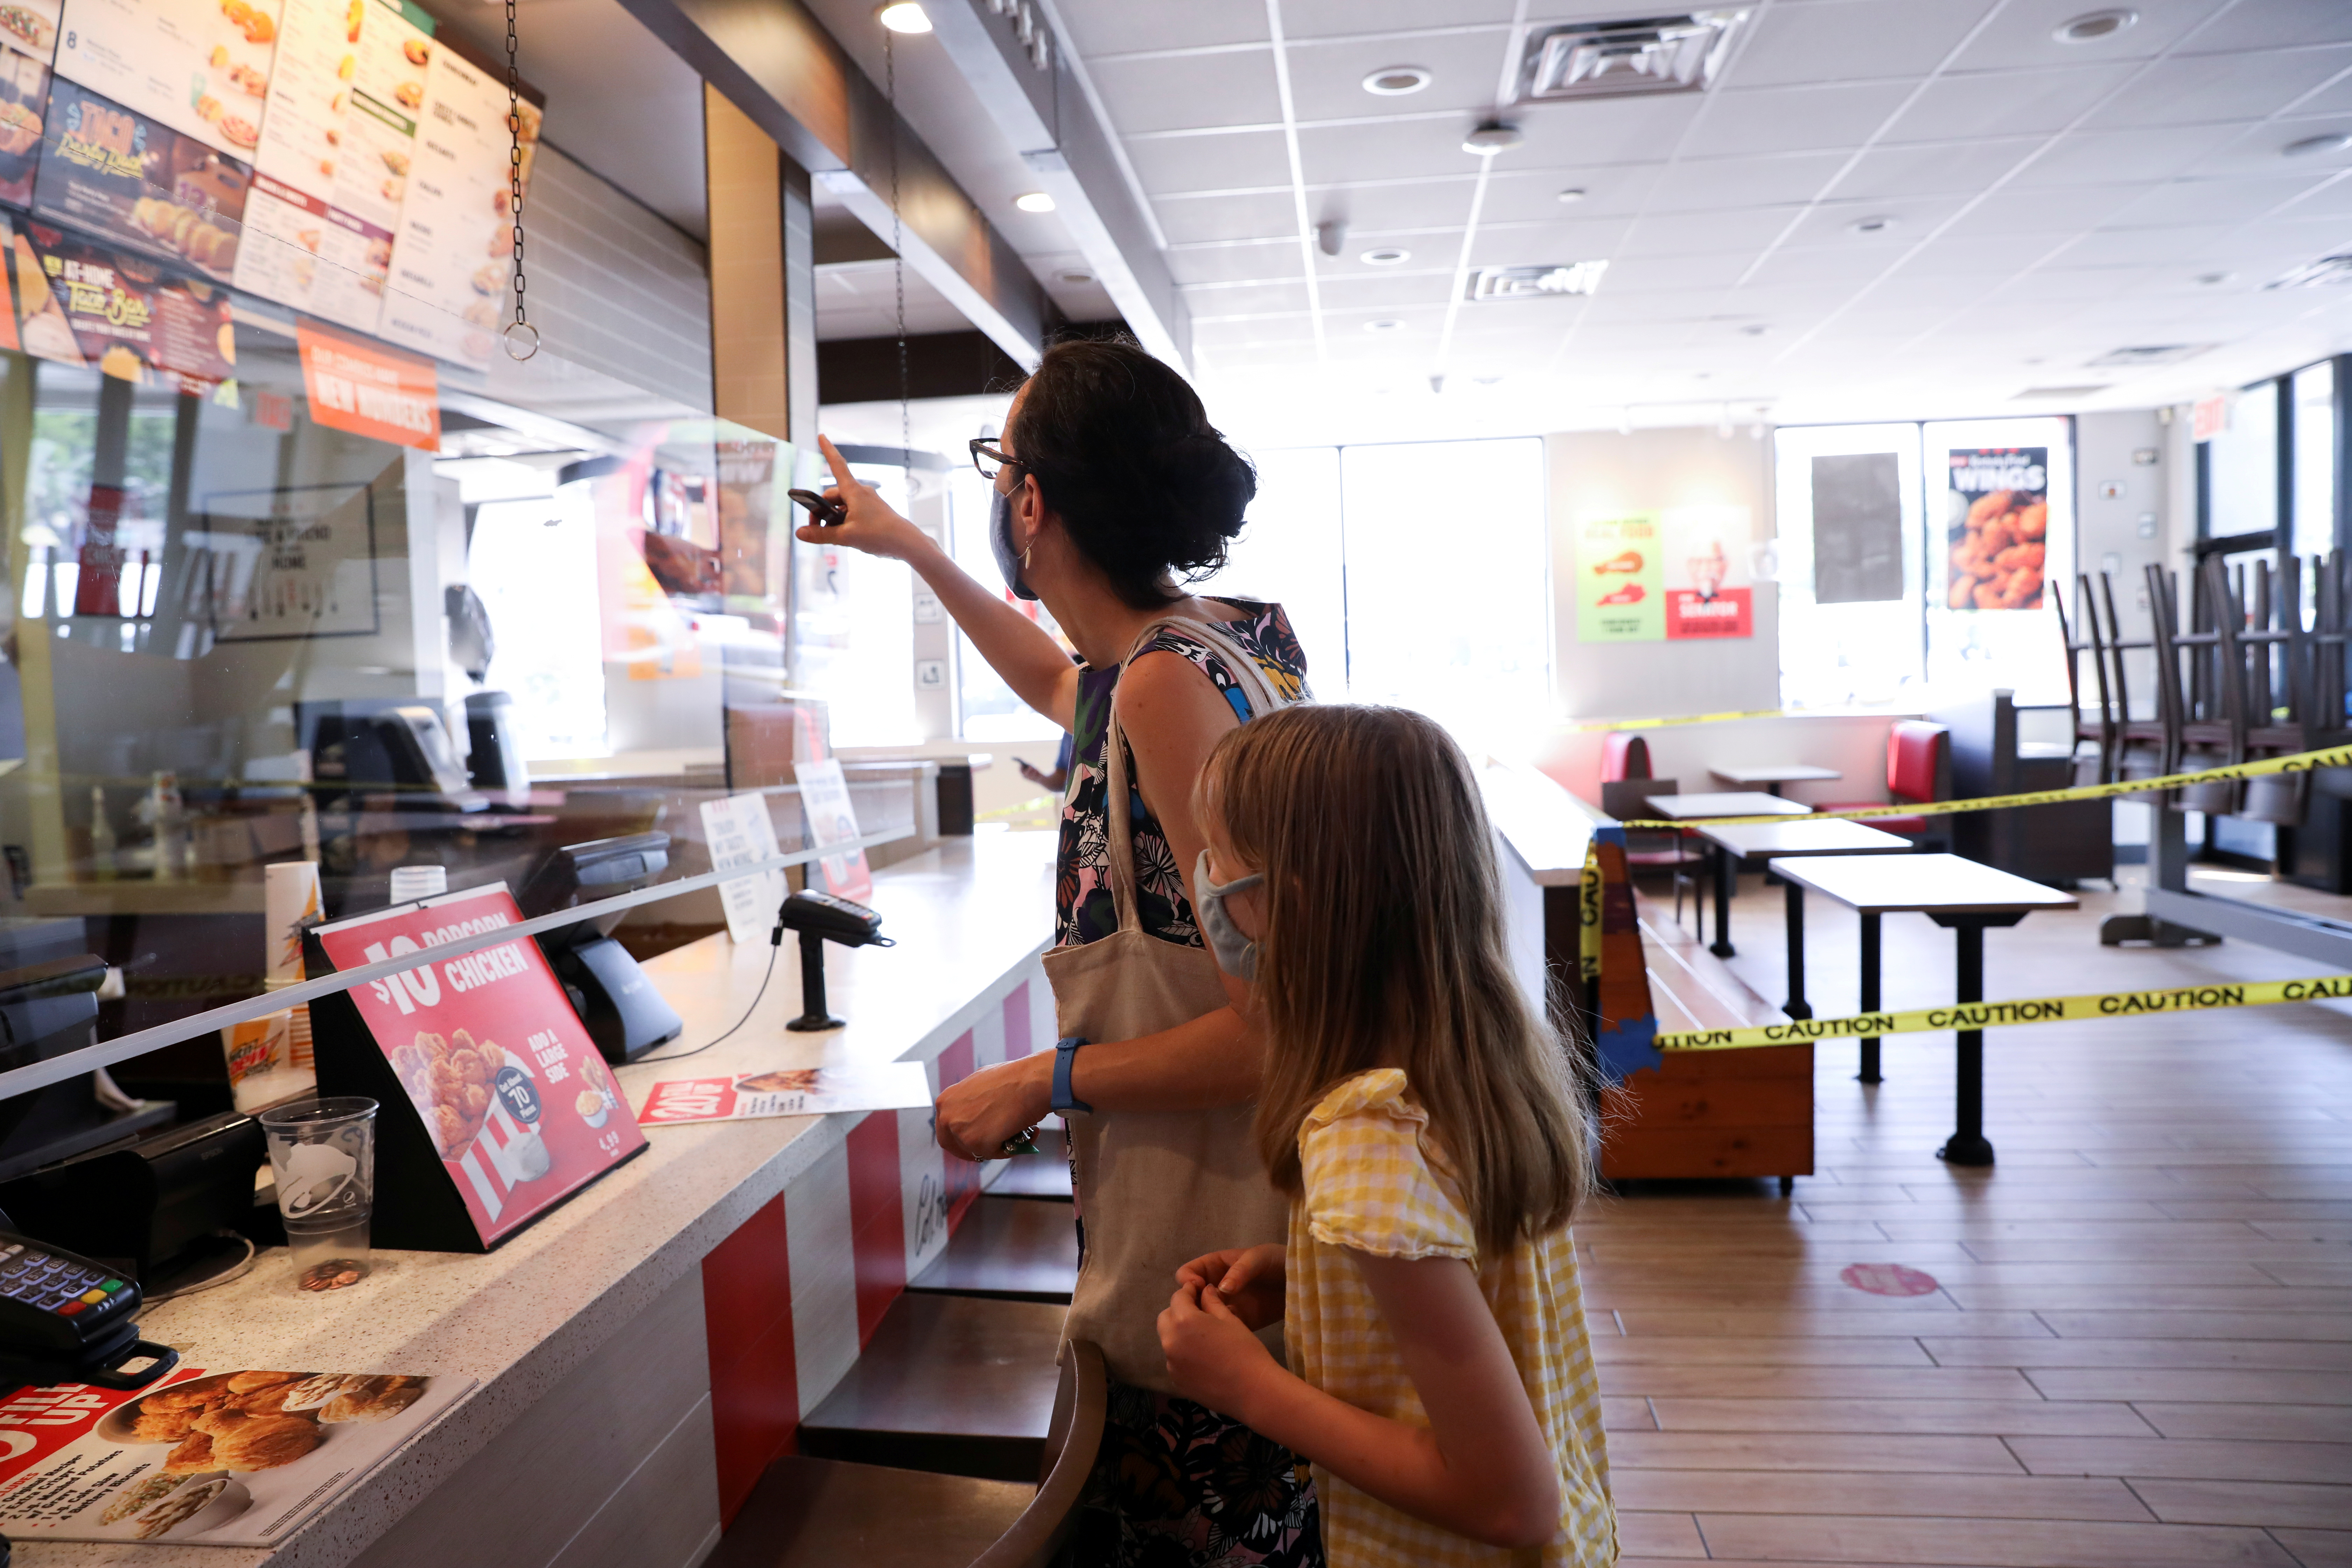 Naomi and Lydia Hassebroek order food from Taco Bell during the outbreak of the coronavirus disease (COVID-19) in Brooklyn, New York, U.S., June 23, 2020. REUTERS/Caitlin Ochs/File Photo